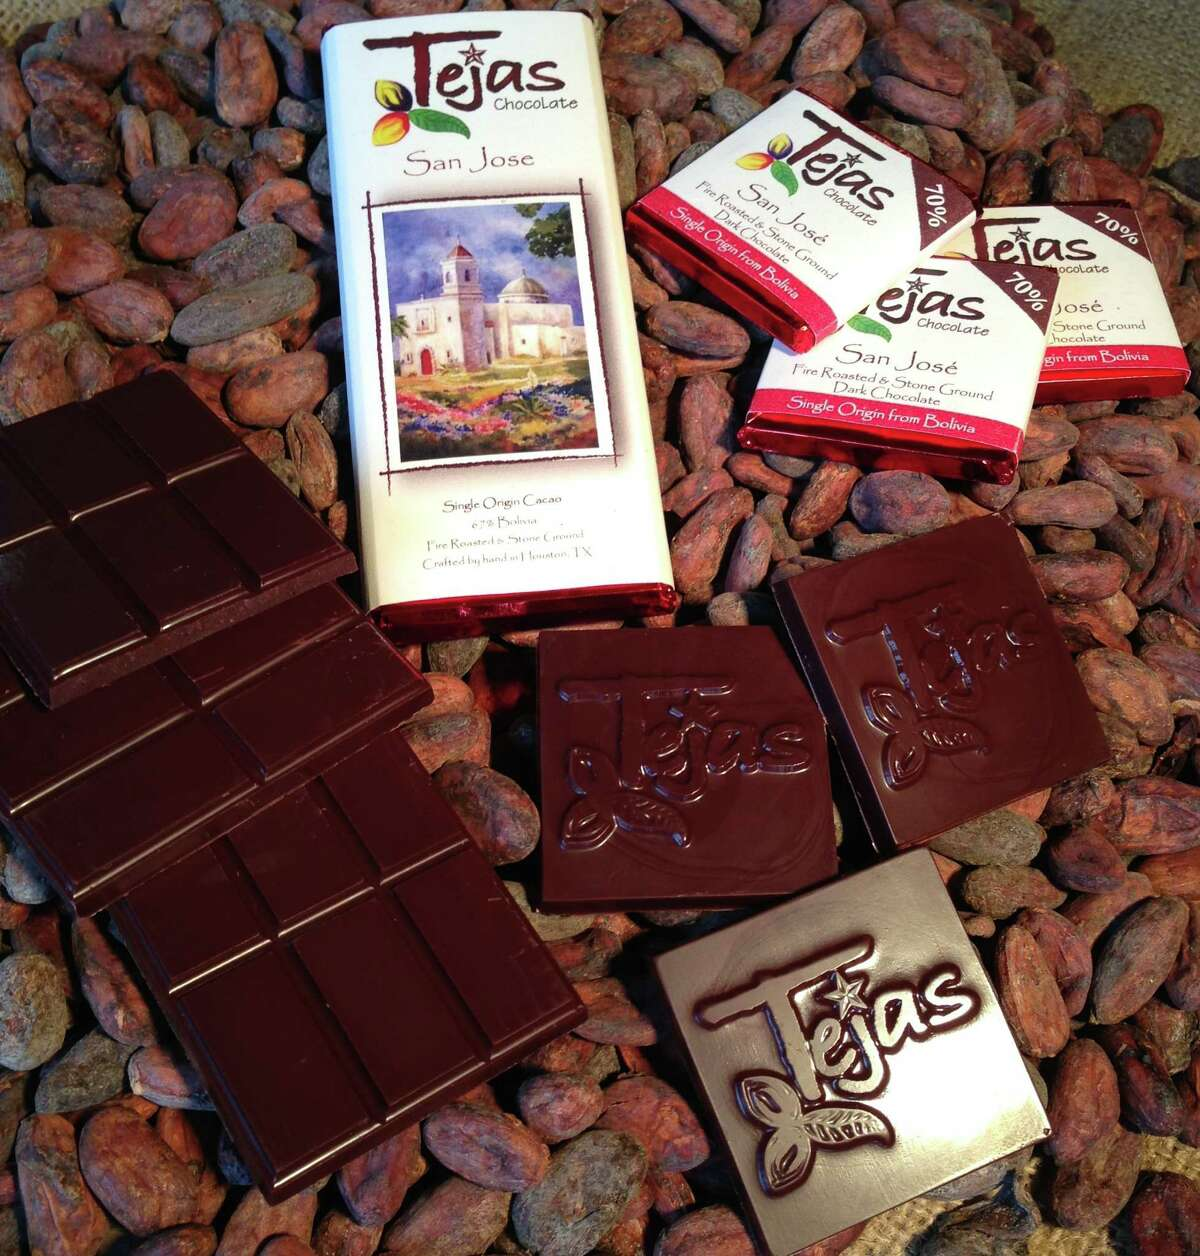 """Tejas Chocolates are made in Spring, TX. """"We hand craft chocolate using only premium cocoa beans sourced from cacao farms around the world. Our method is uniquely Texan and inspired by traditional artisan chocolate makers. """""""